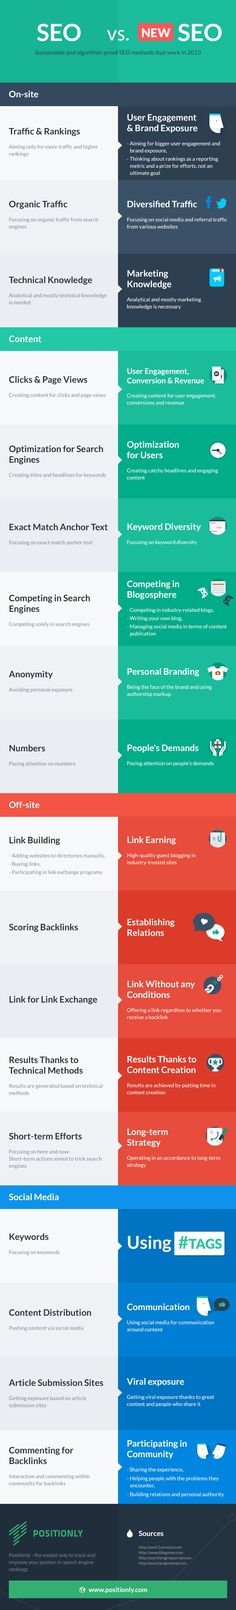 SEO vs. New SEO – Sustainable and Algorithm-Proof Search Marketing Methods That Work - #infographic | via #BornToBeSocial